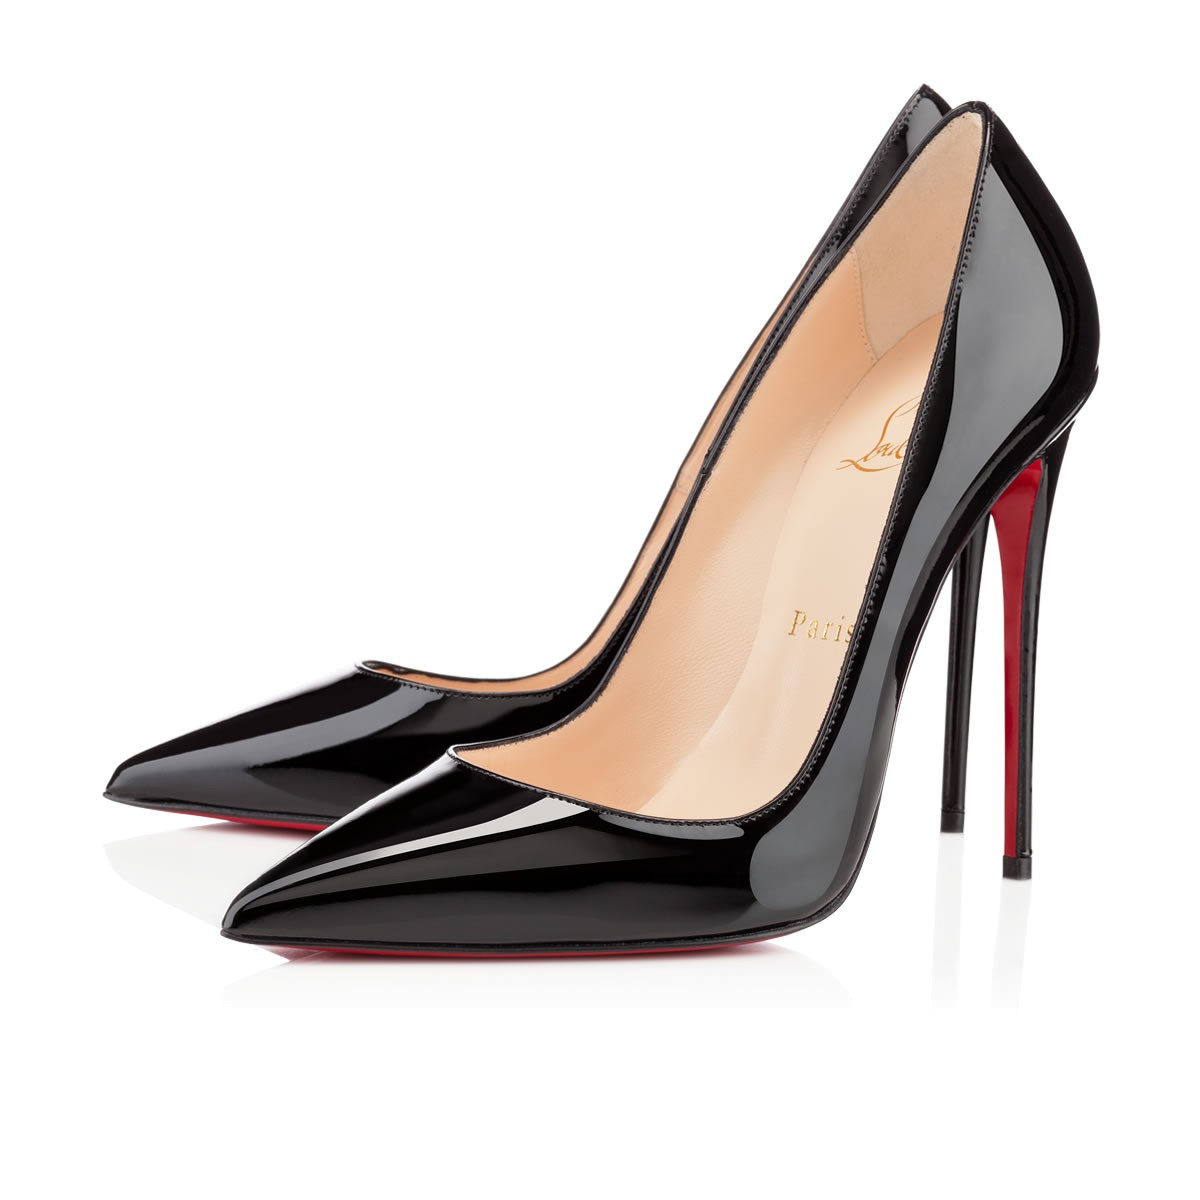 nouvelle arrivee 06d57 deb20 SO KATE 120 Black Patent Calfskin - Women Shoes - Christian Louboutin